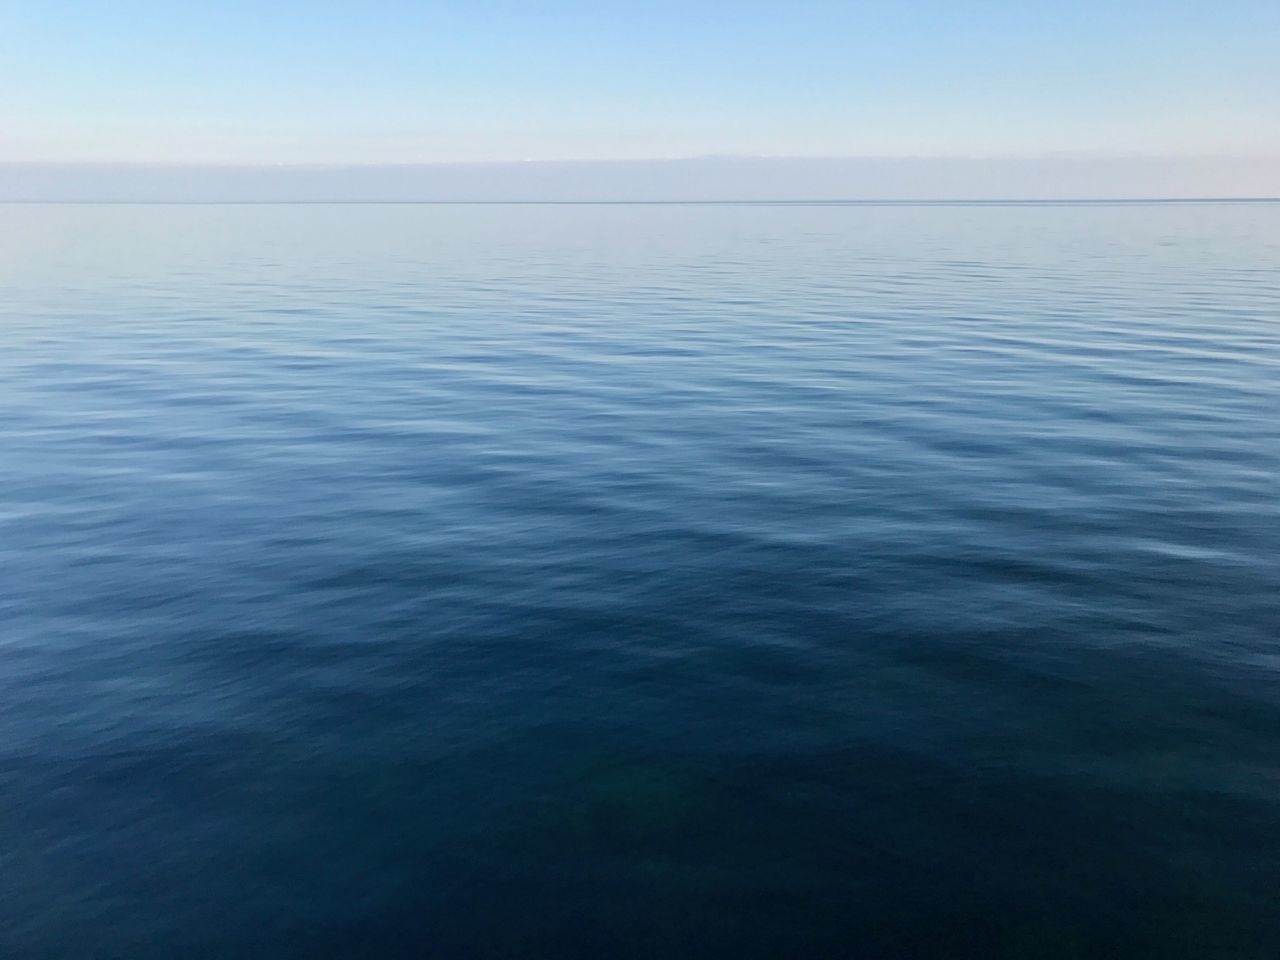 Beauty In Nature Blue Clear Sky Day Horizon Over Water Monochrome Nature No People Ocean Outdoors Rippled Scenics Sea Sky Tranquil Scene Tranquility Water